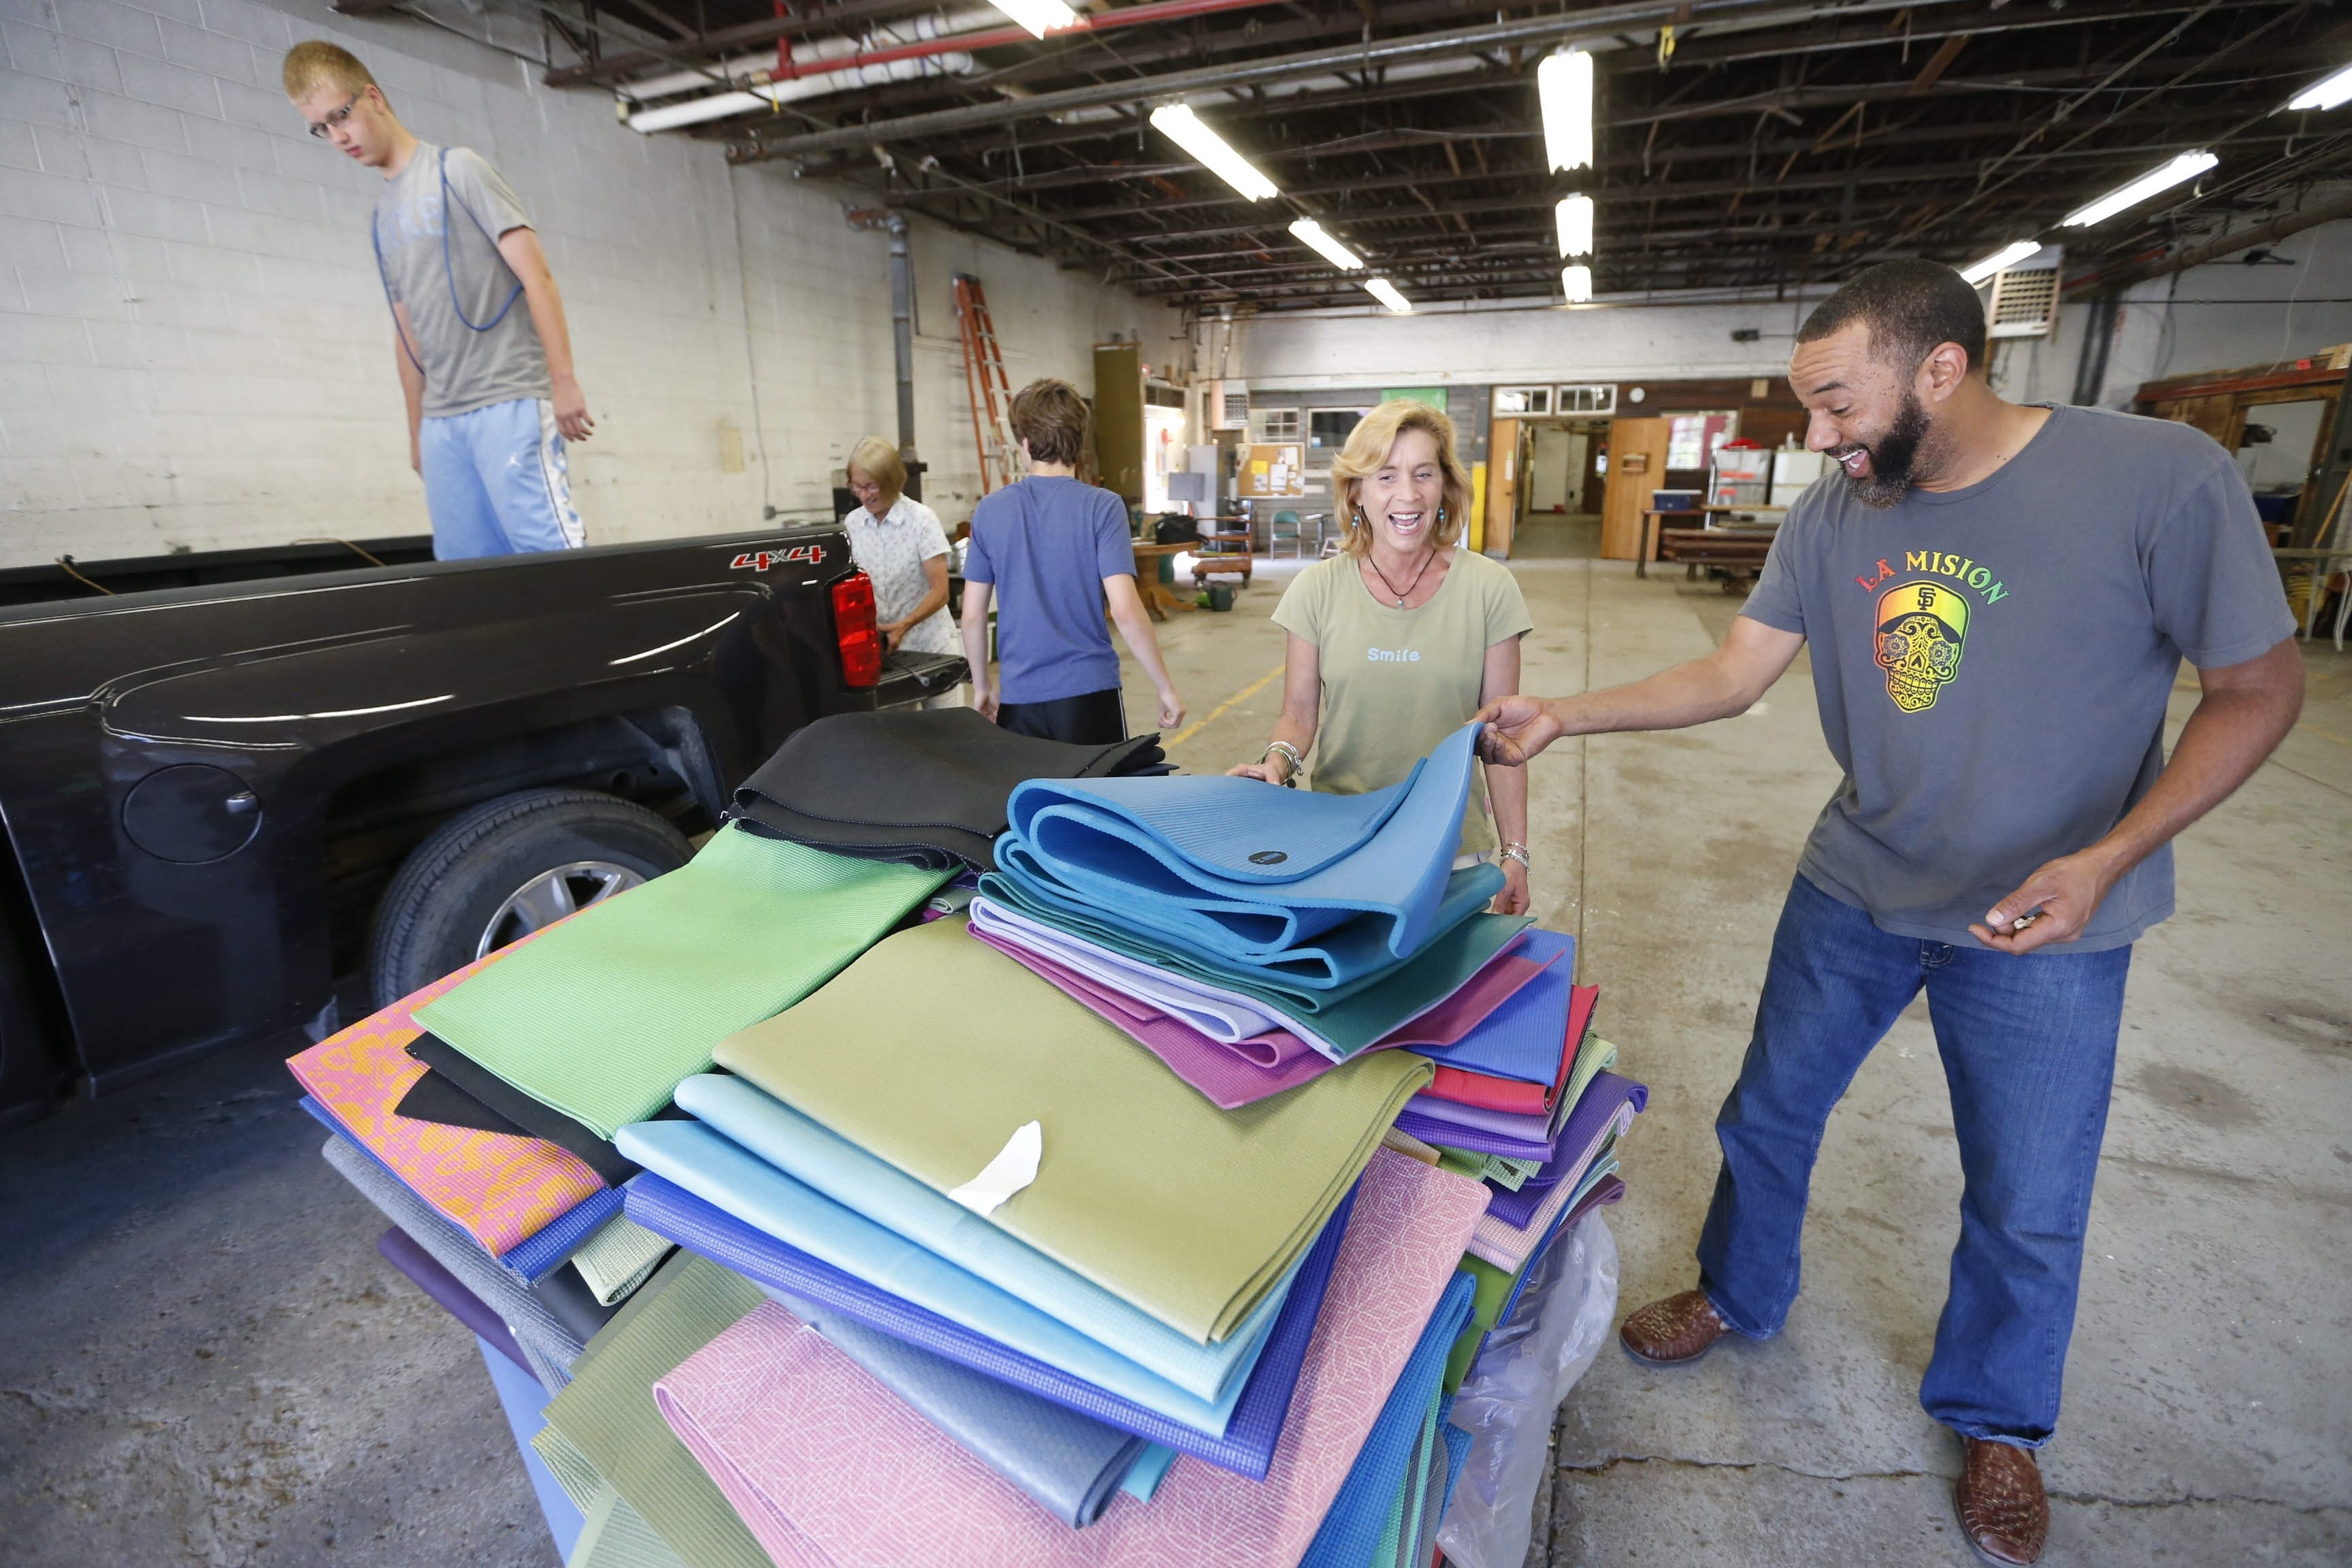 Jason Ross Brown, right, delivered 200 donated yoga mats to Mary Jo Gervase, second from left, at the Foundry on Northampton on Sunday. Gervase will distribute the mats to Buffalo schools.